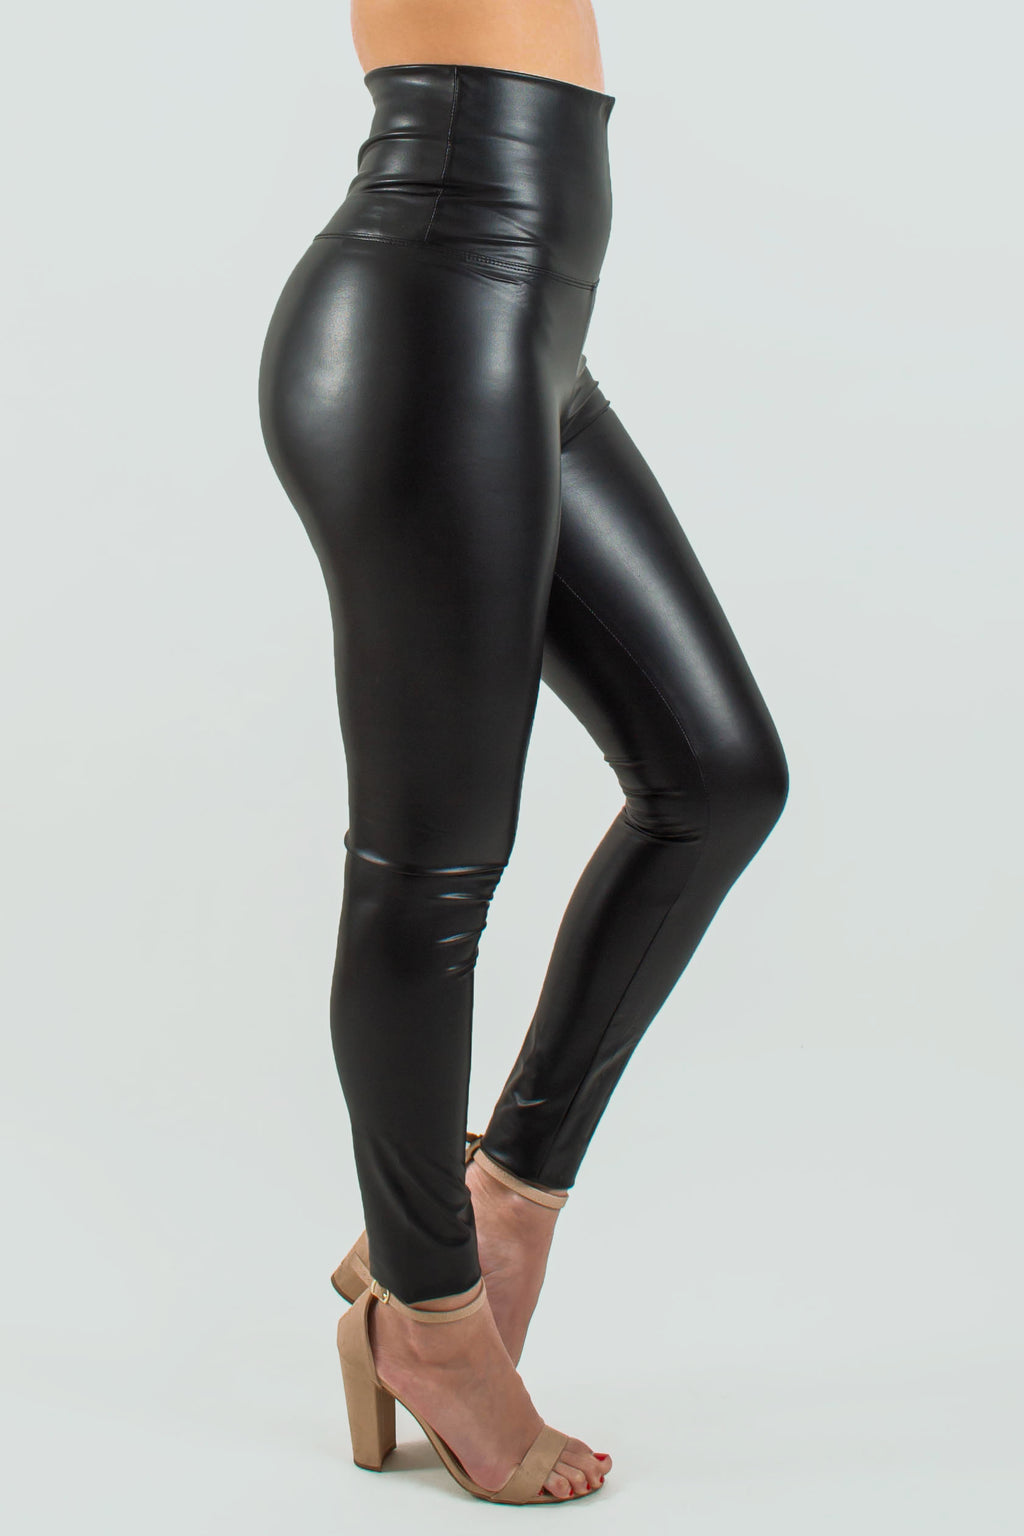 Boutique bottoms, Boutique leggings, Boutique leather leggings, Cute leggings, Cute leather leggings